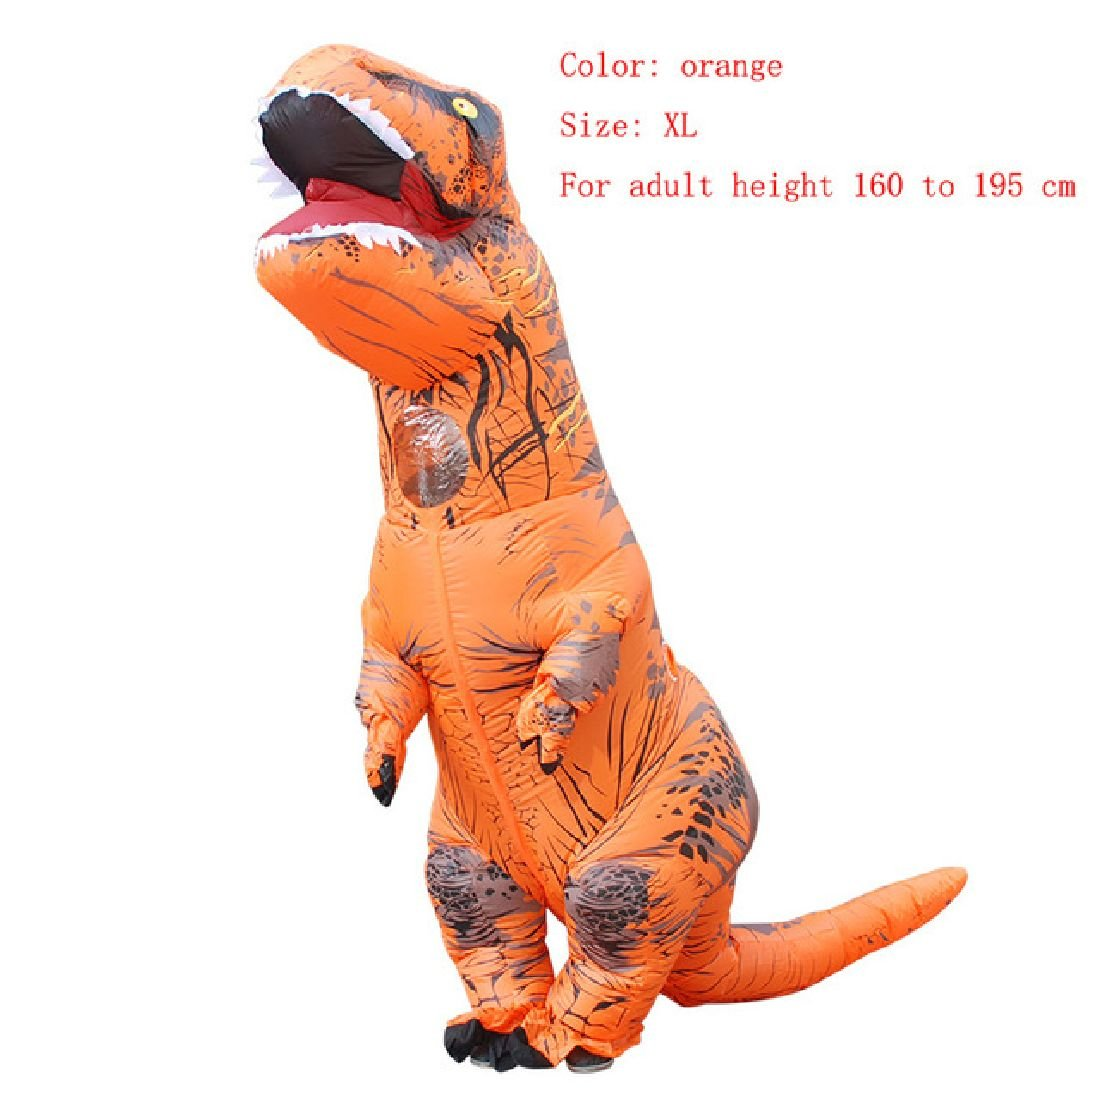 Inflatable Costume Christmas Cosplay Dinosaur Animal Jumpsuit Halloween Costume by Crystalbella Inflatable Cos